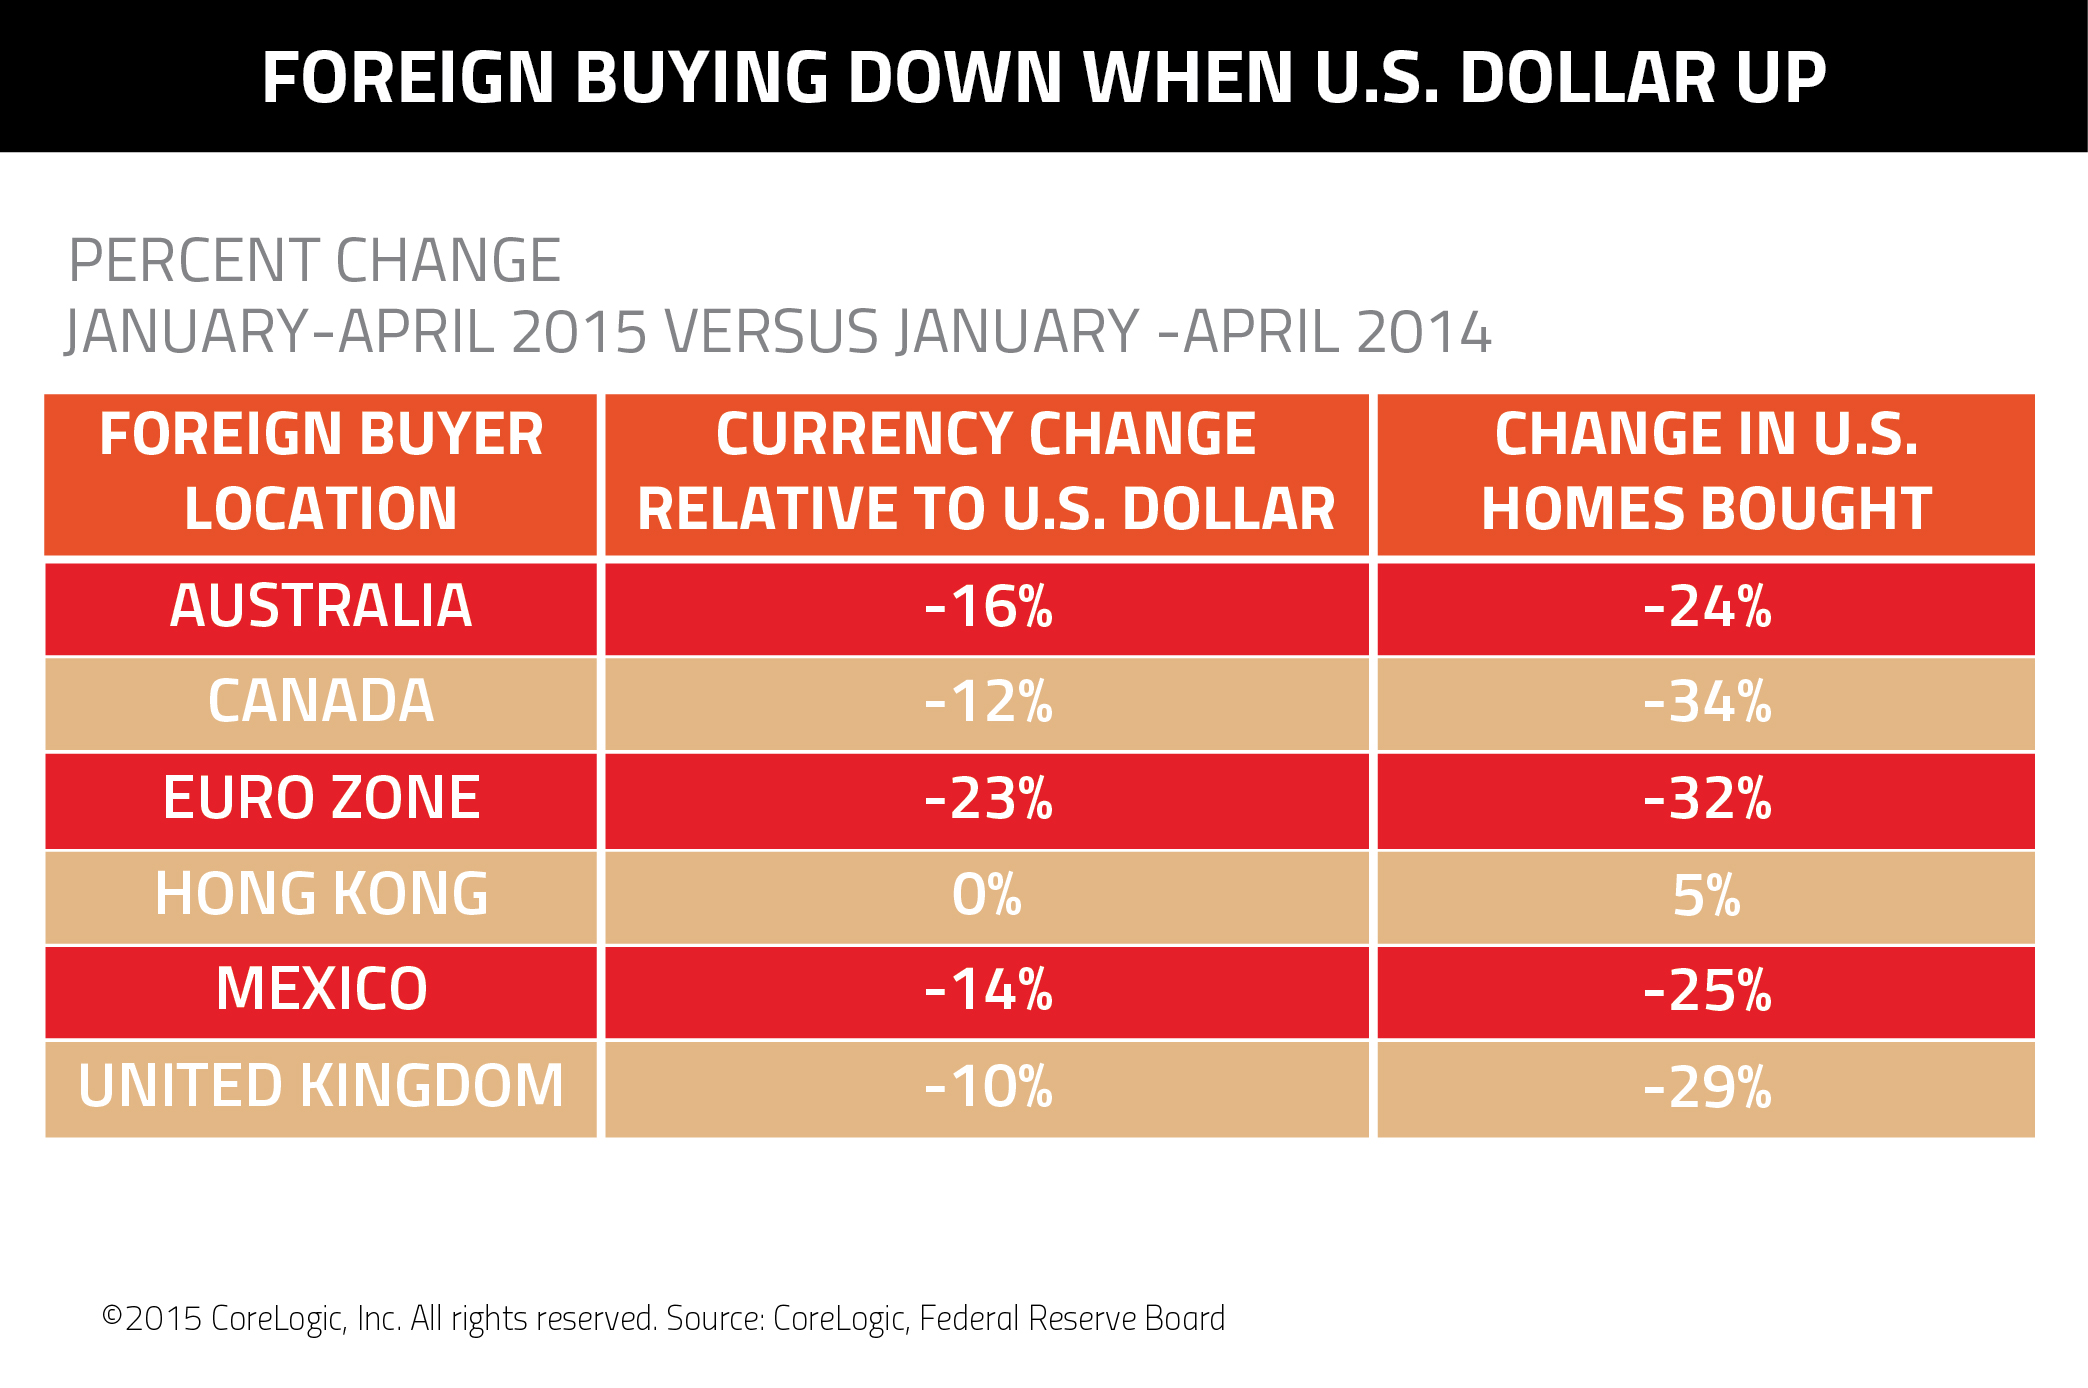 Foreign Homebuyers Discouraged by Strong Dollar